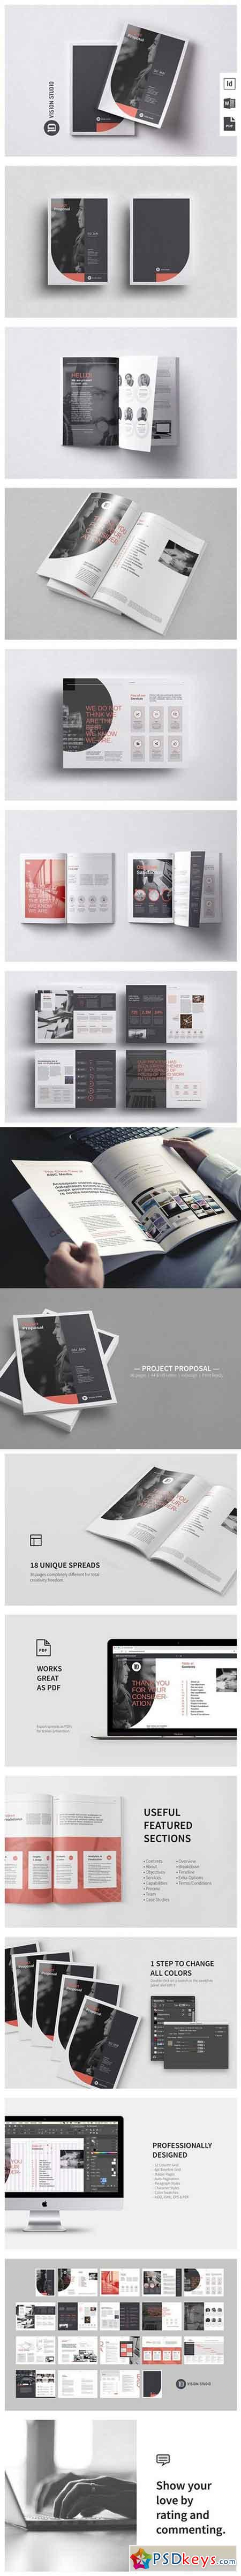 Project Proposal Template 006 1654217